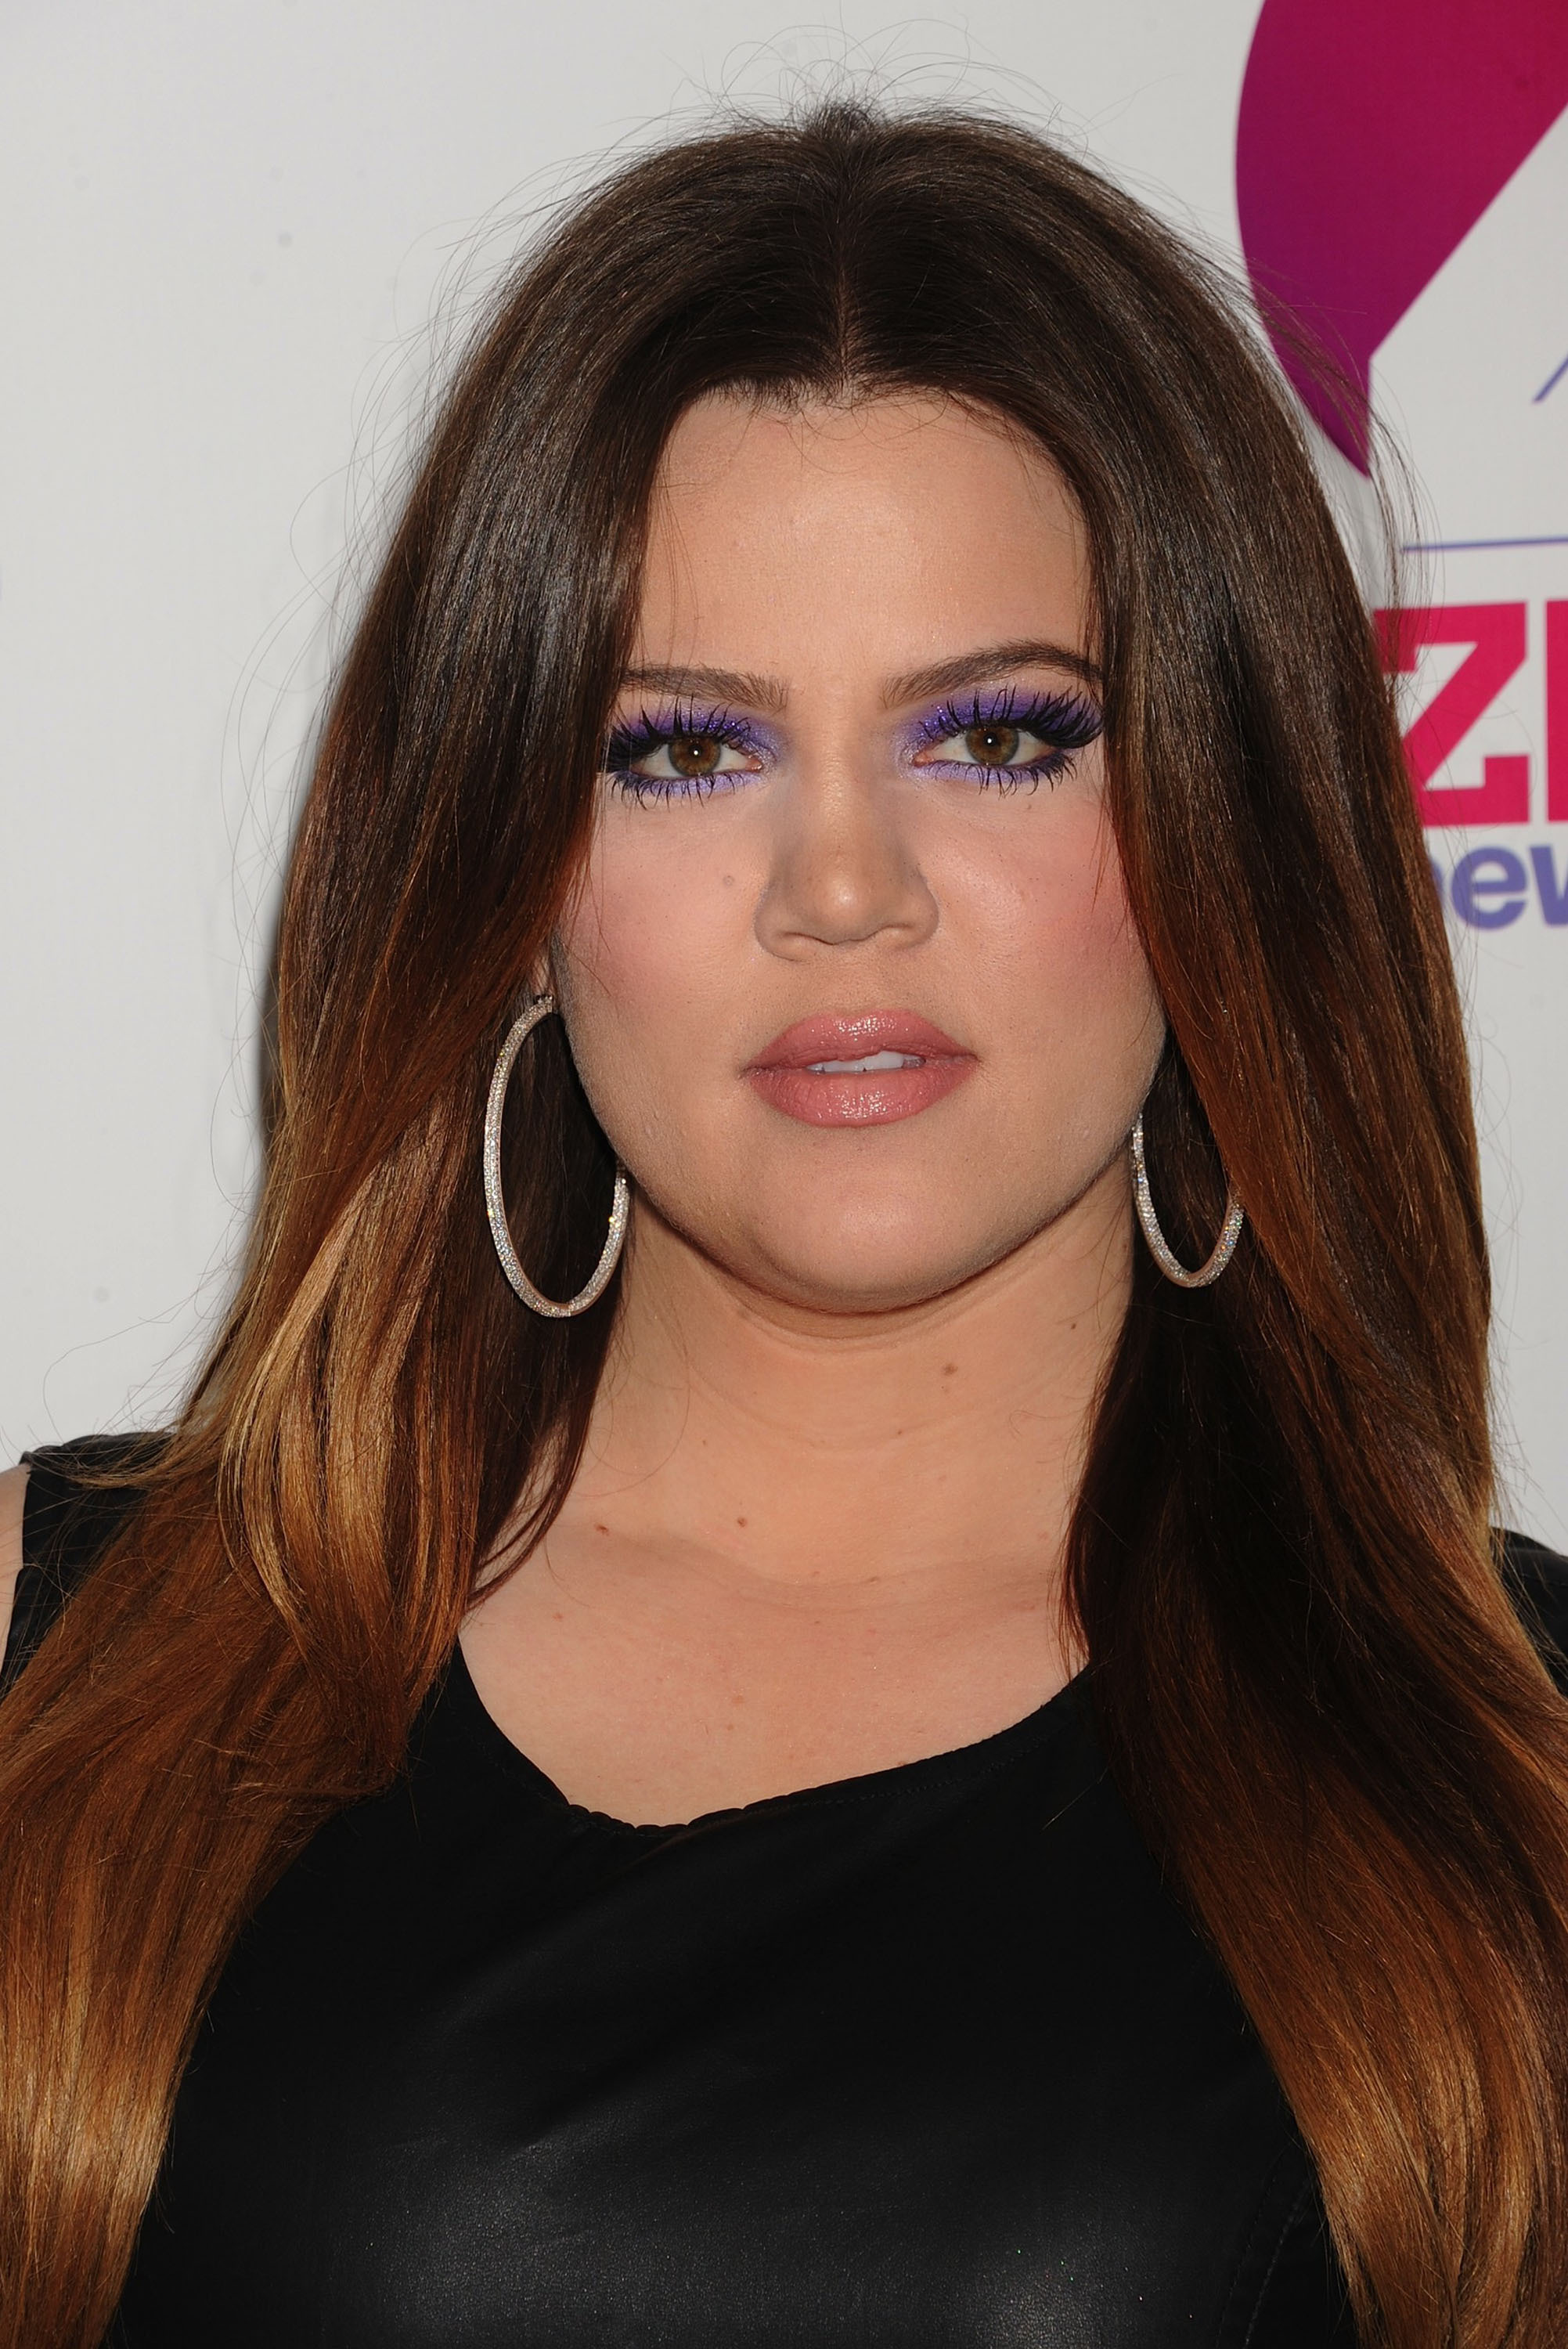 khloe kardashian - photo #37